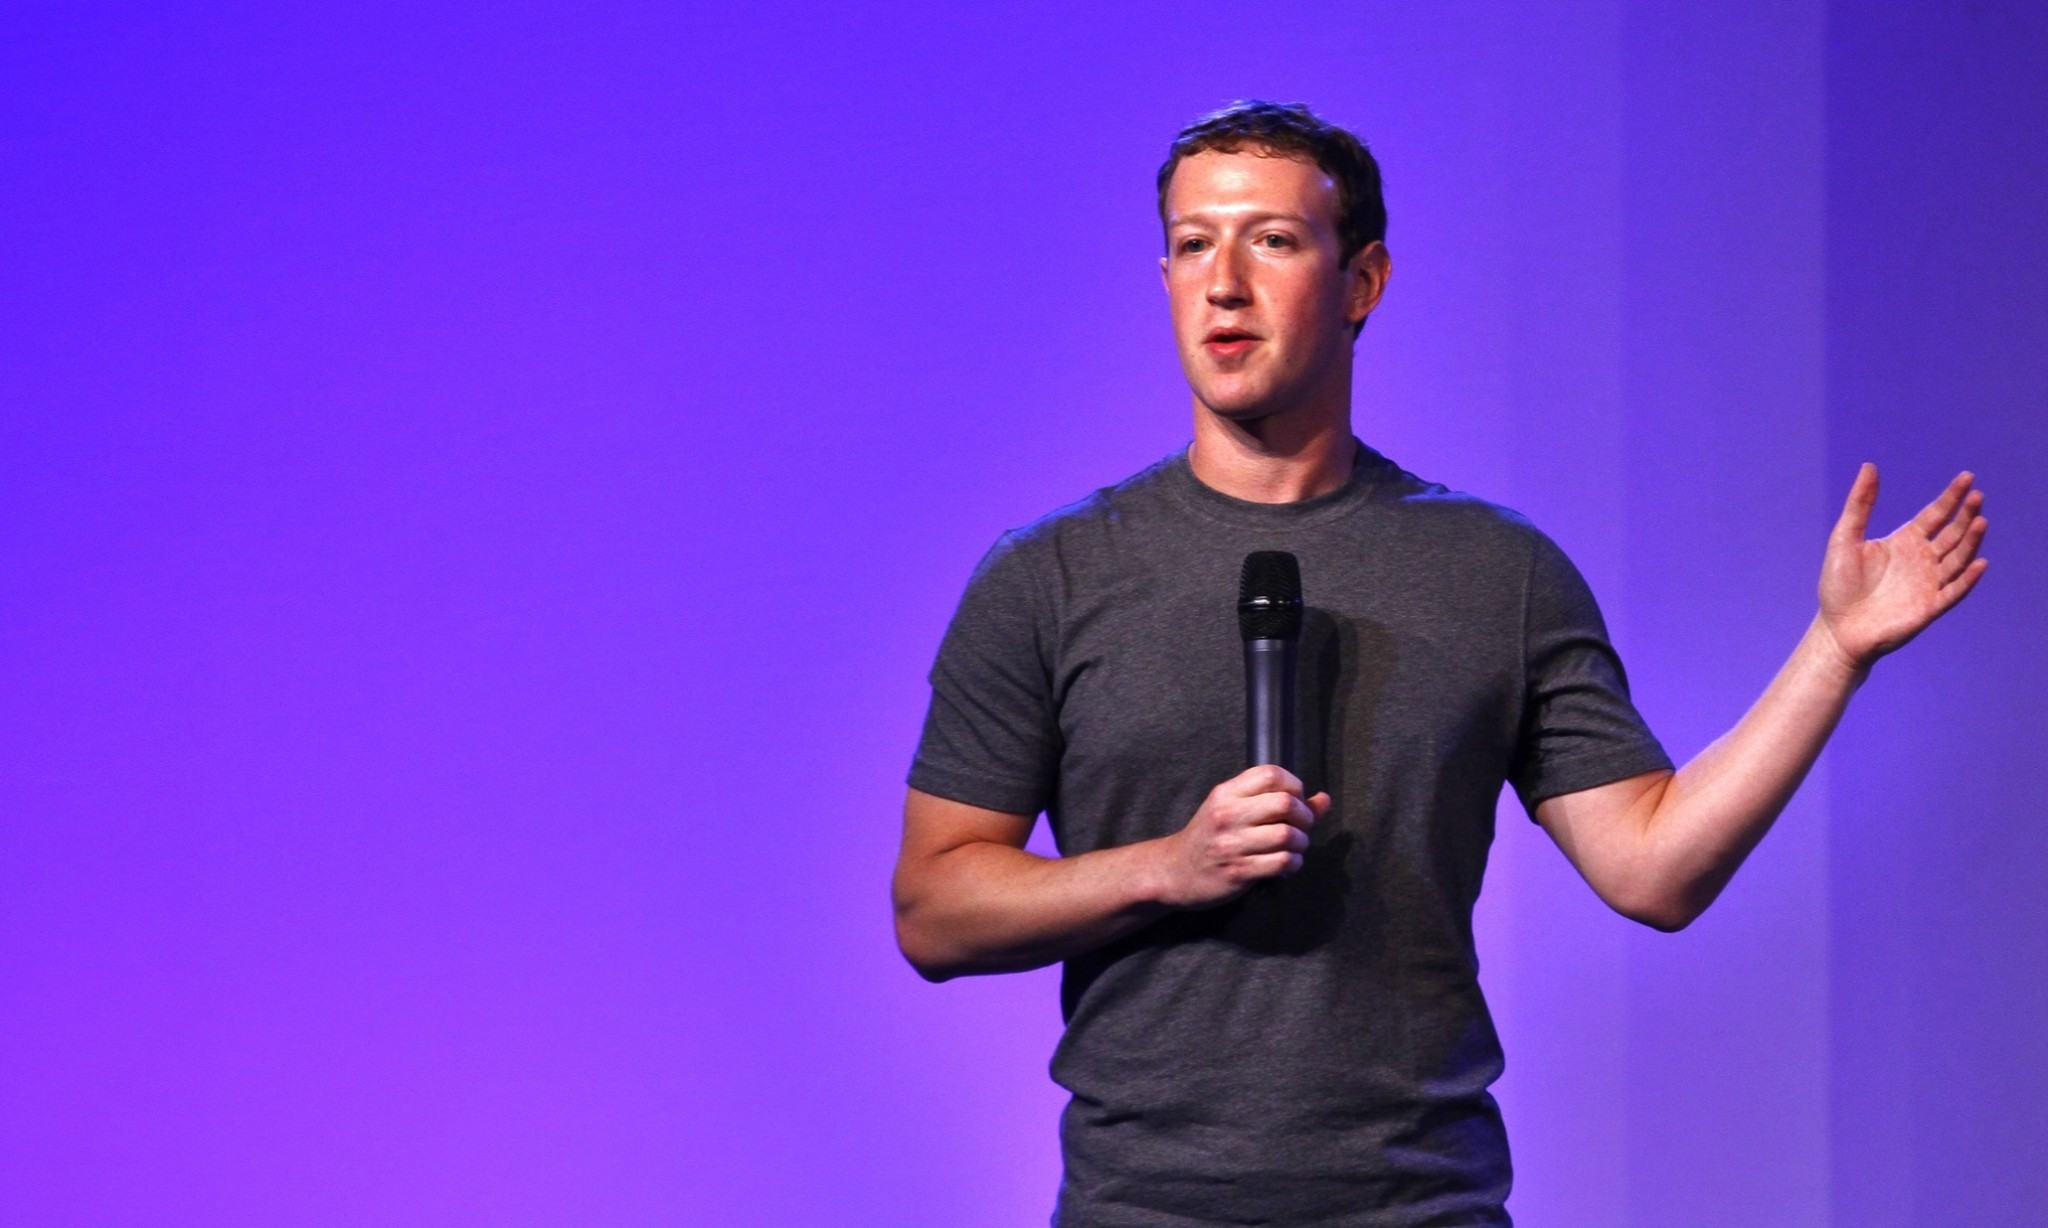 No dislike button for Facebook, declares Zuckerberg